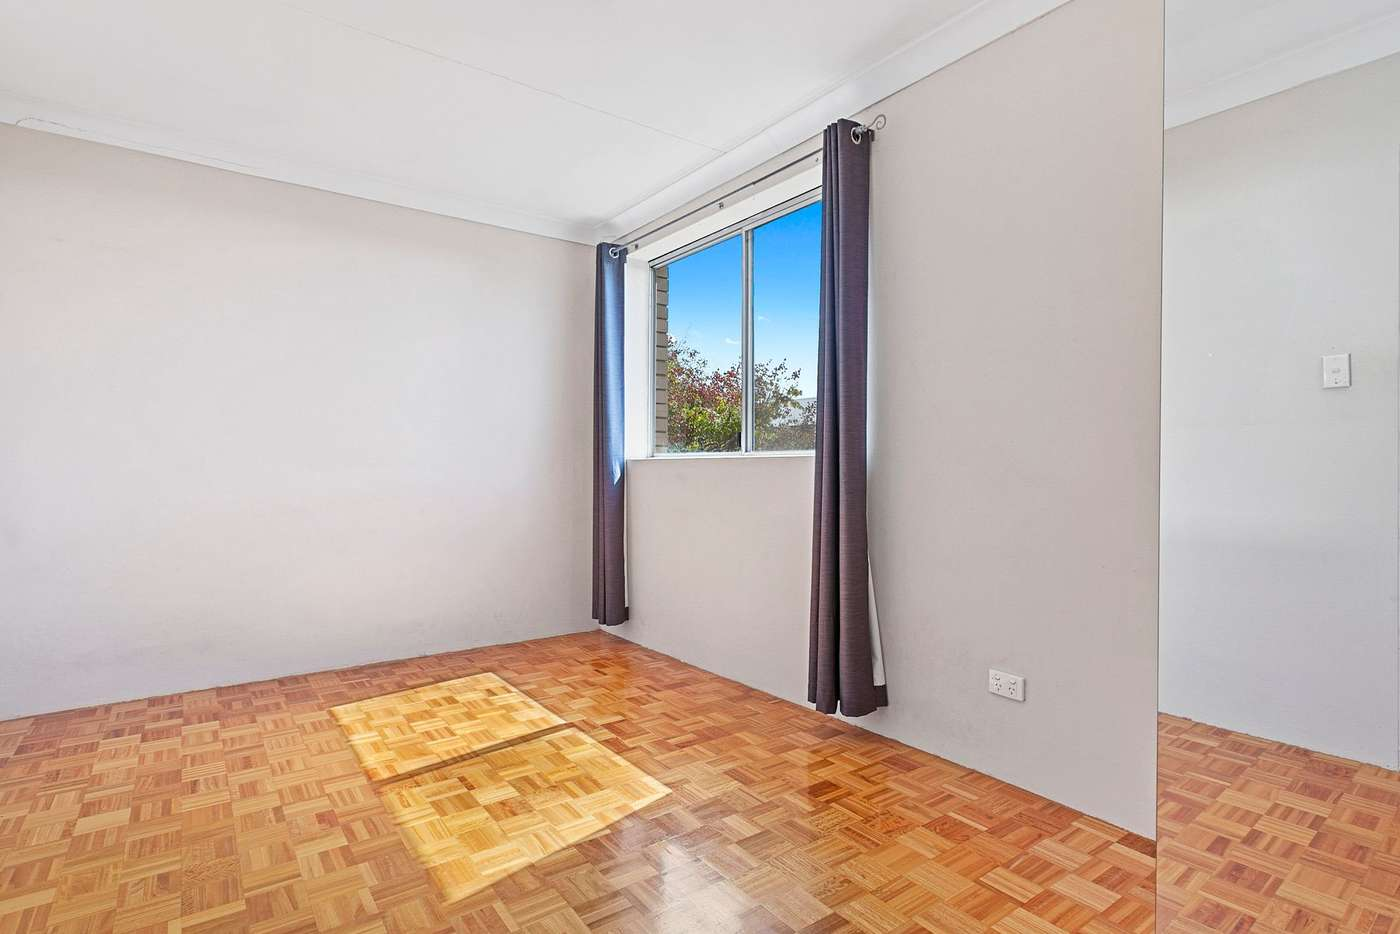 Sixth view of Homely unit listing, 6/28 Birdwood Street, Coorparoo QLD 4151